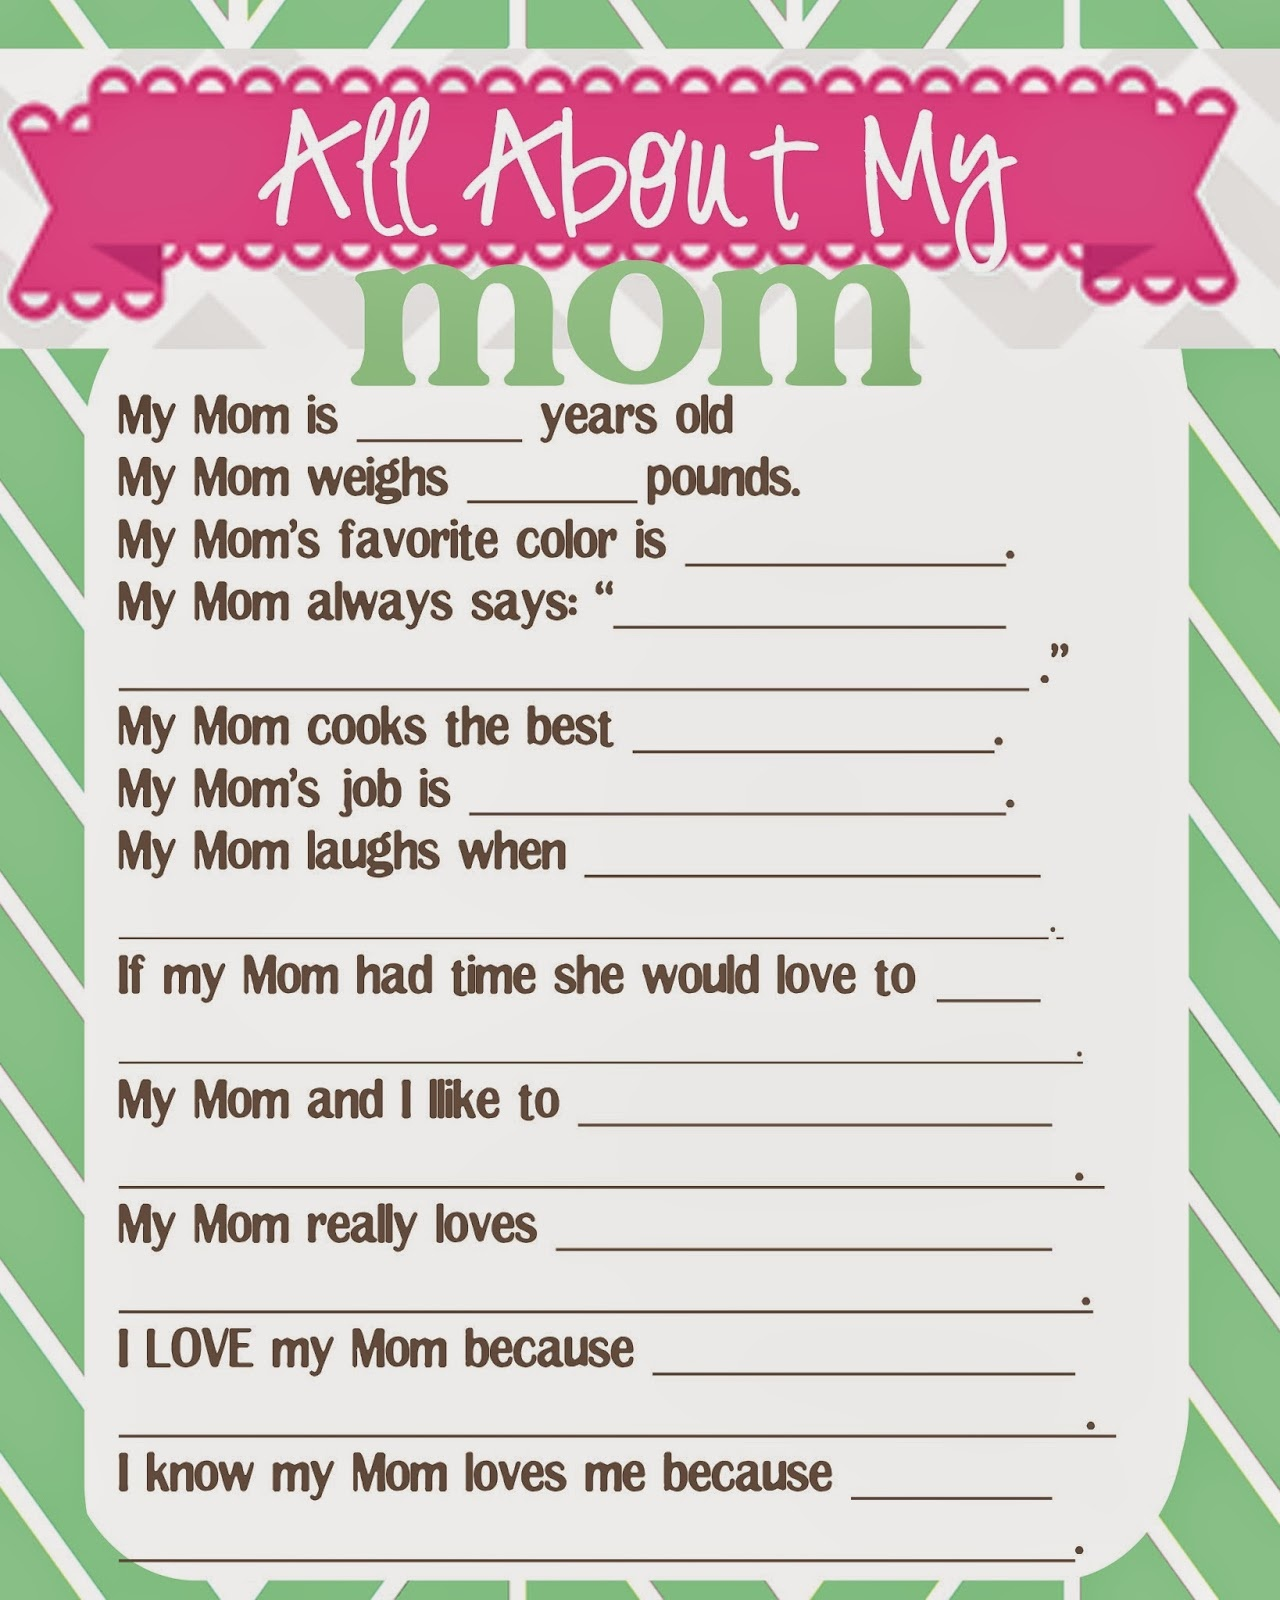 What Does The Cox Say?: Mother's Day Questionnaire And Free Printables - Free Printable Mother's Day Questionnaire